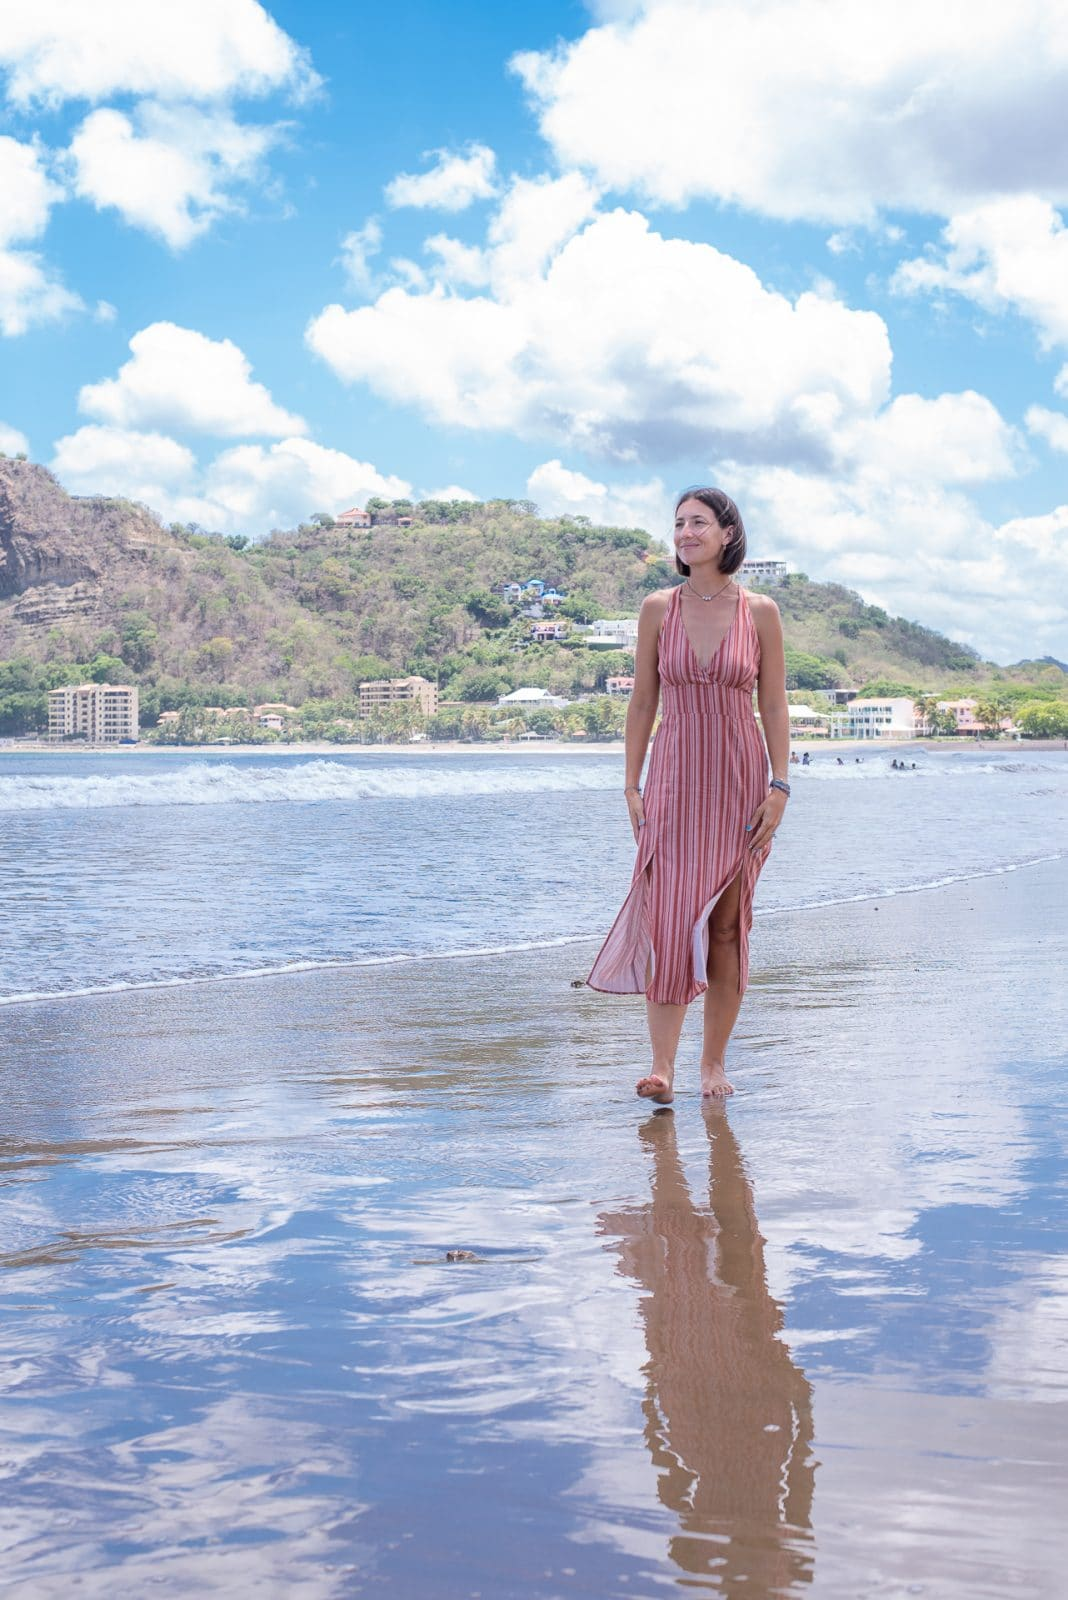 New agent Christina on the beach in San Juan Del Sur.